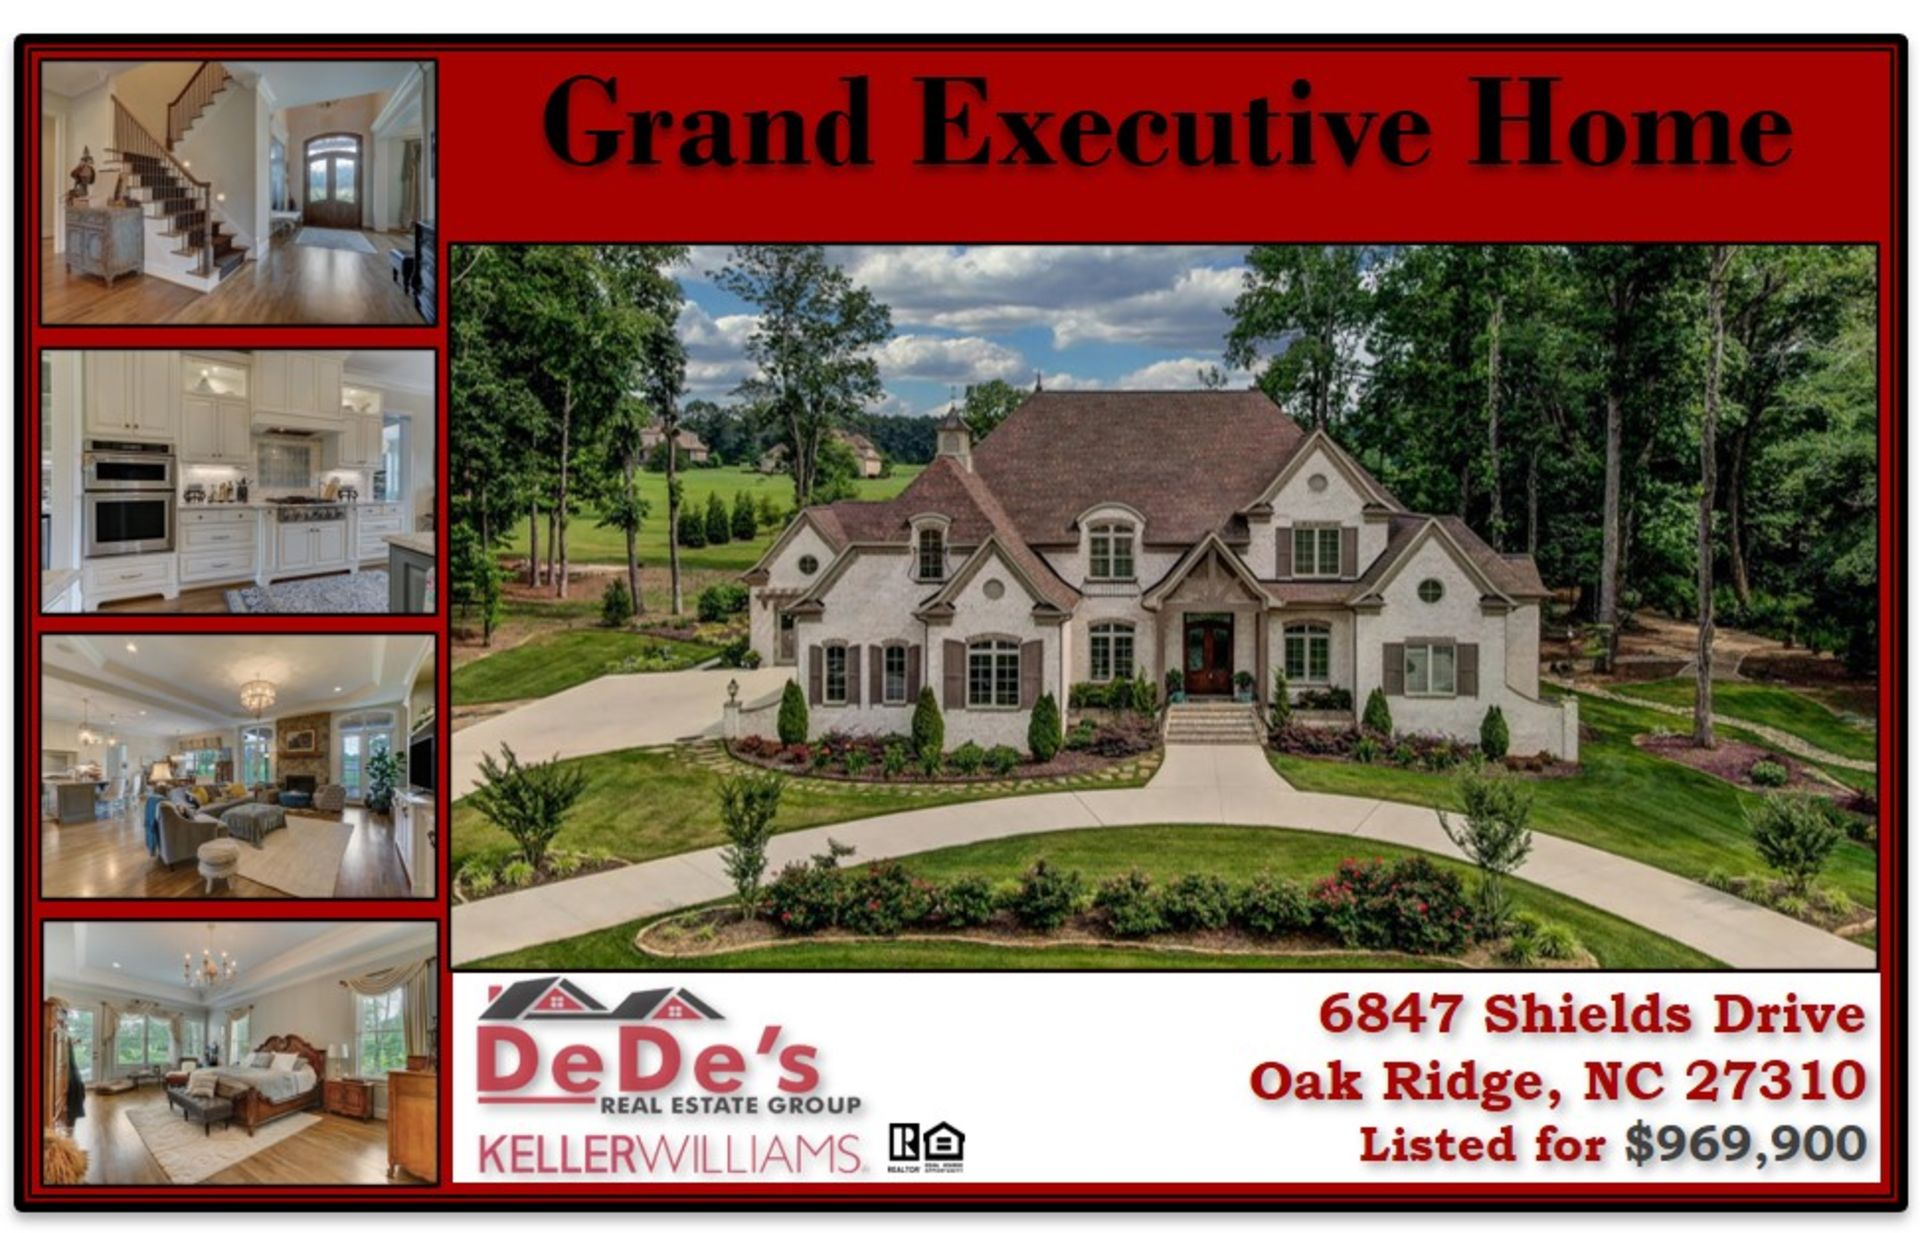 Take a look at this Grand Executive Home in Oak Ridge!!